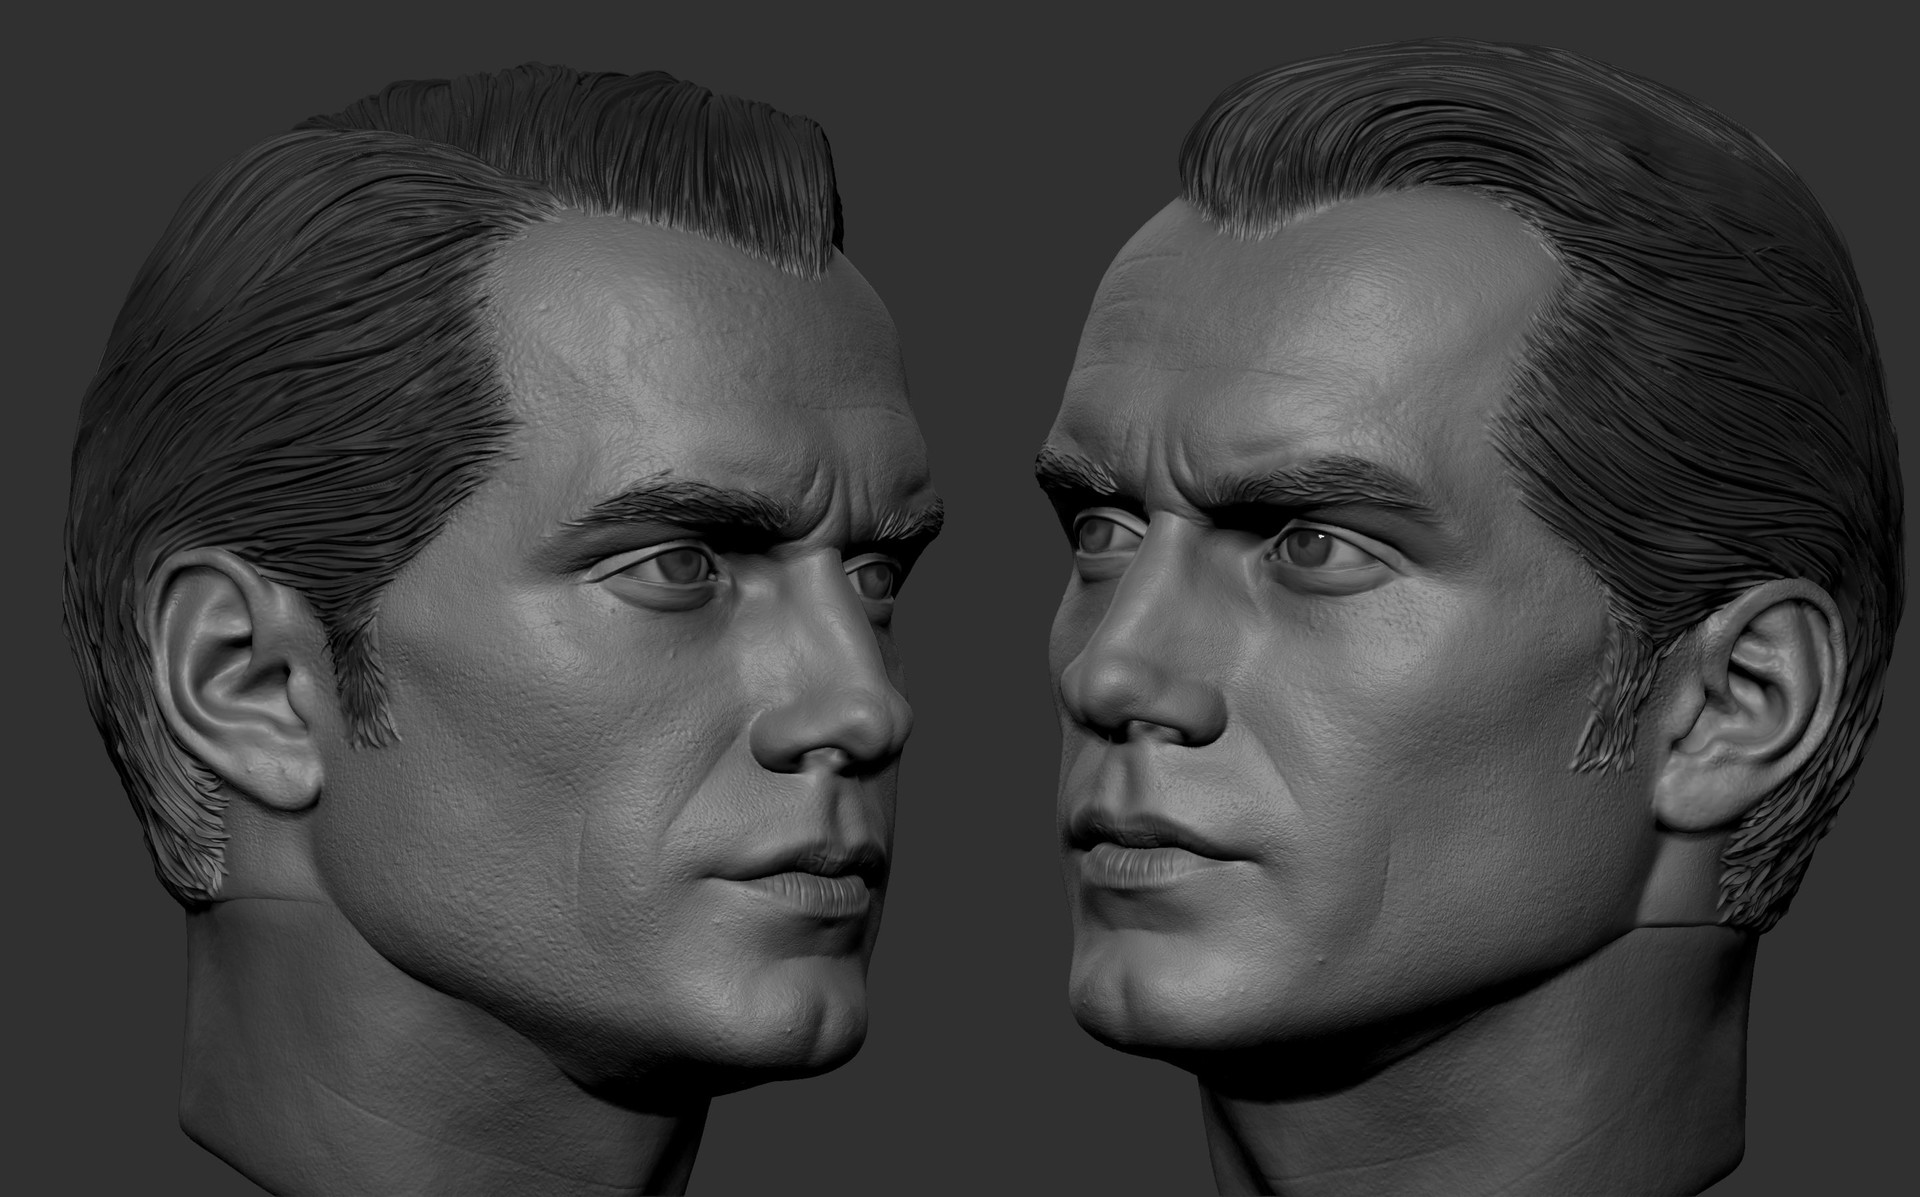 zbrush screen grab-03